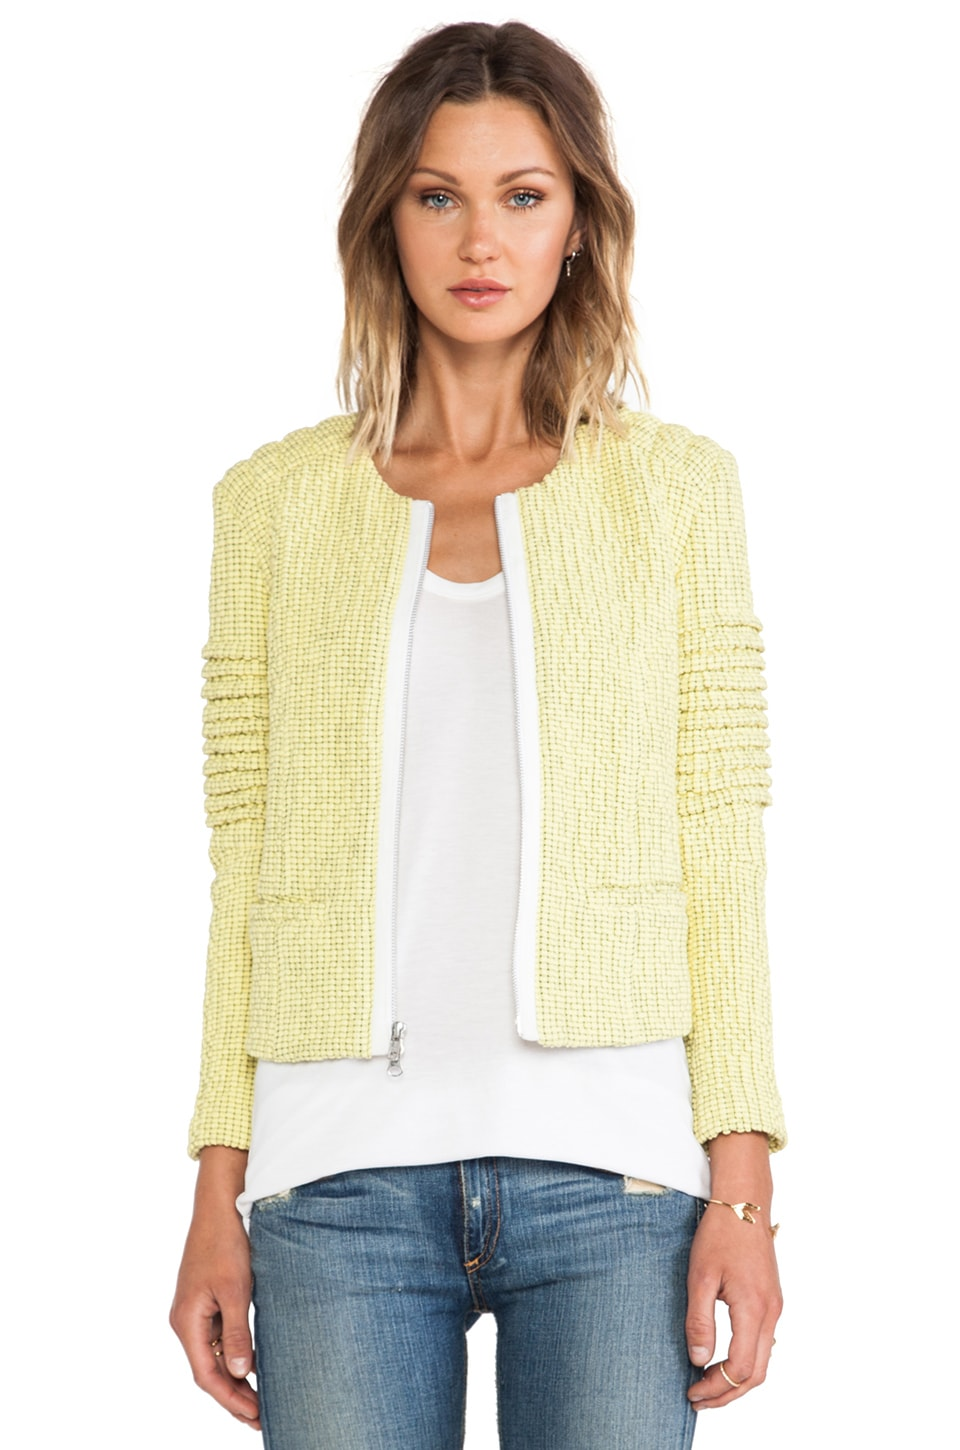 Elizabeth and James Bronco Jacket in Lemon Lime